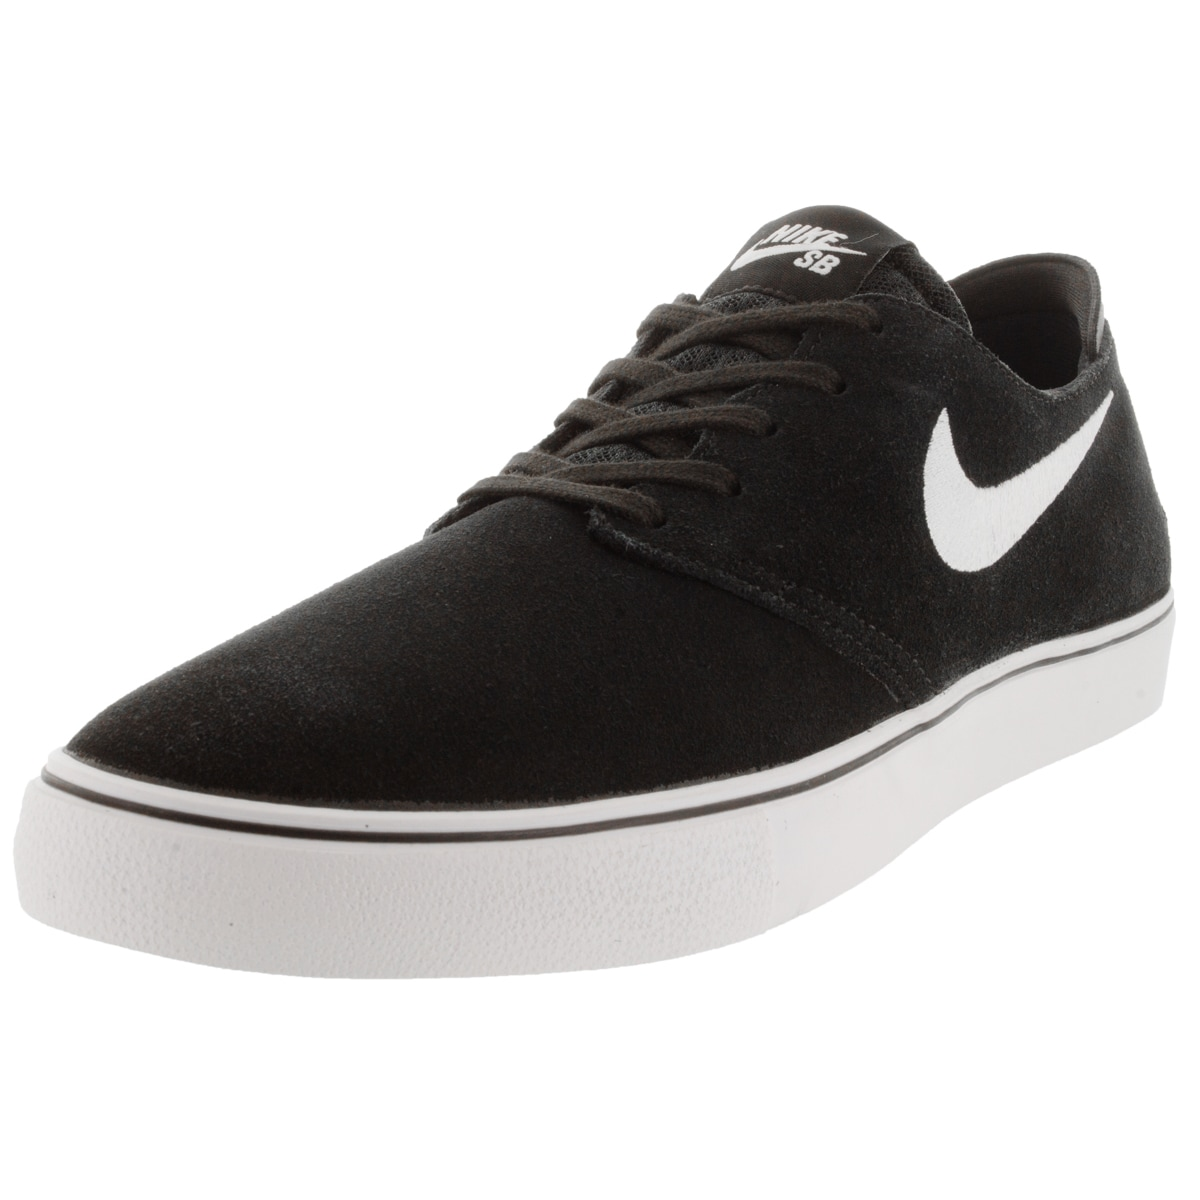 6f45a8ef1 Nike-Mens-Zoom-Oneshot-Sb-Black-White-Gum-Light-Brown-Skate-Shoe -54ffe8c3-b274-4d87-b2e8-a4bc47d913c1.jpg